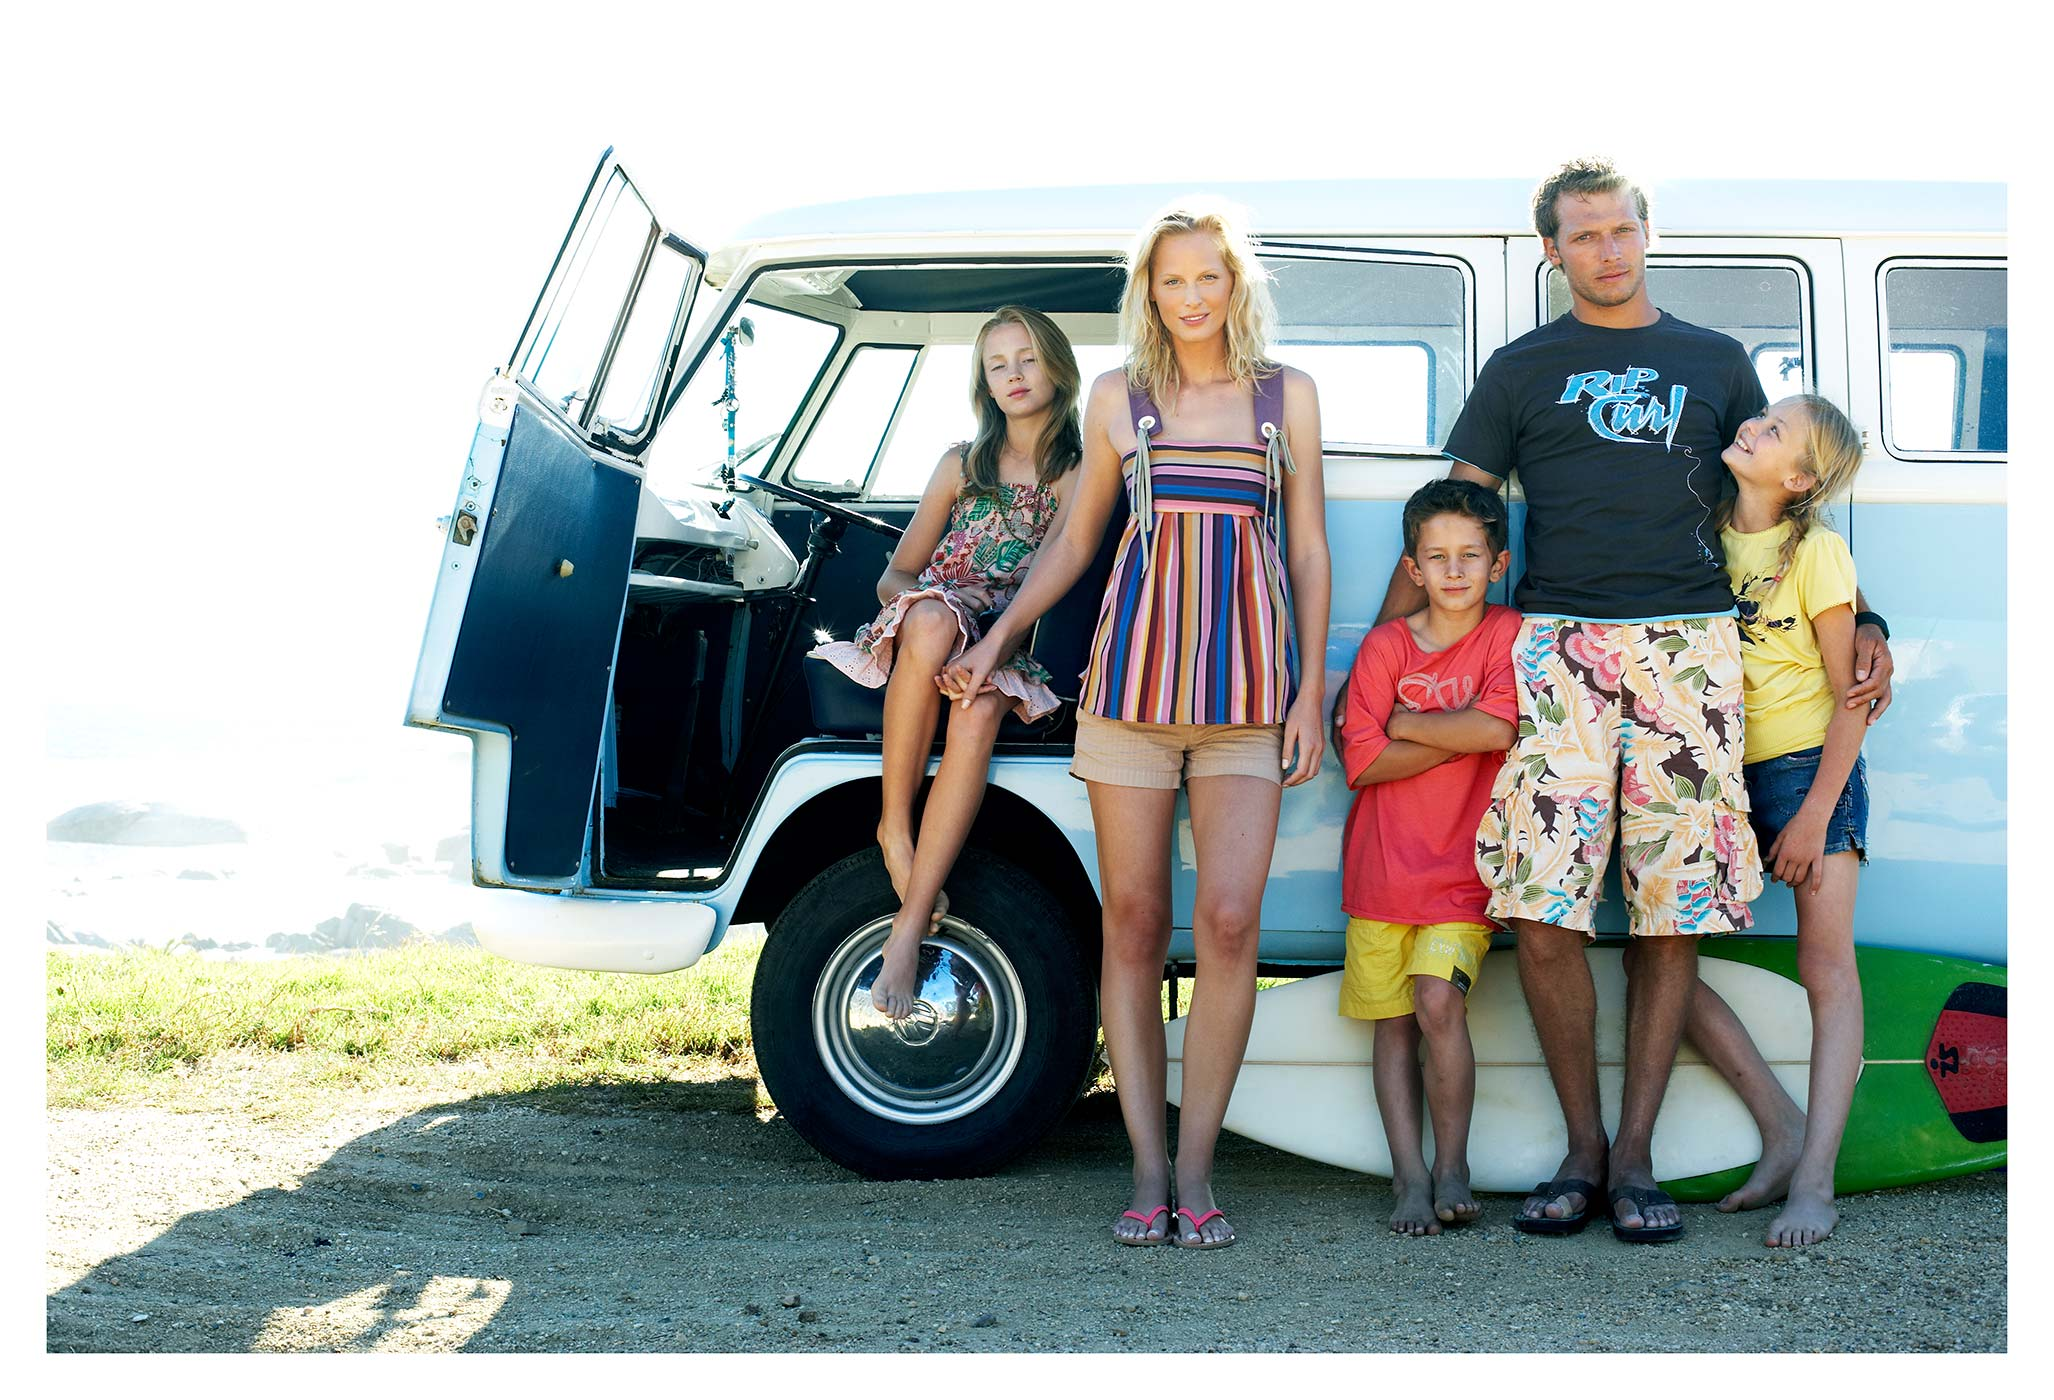 12_Family_Portrait_Camper_Van-005162-2-copy